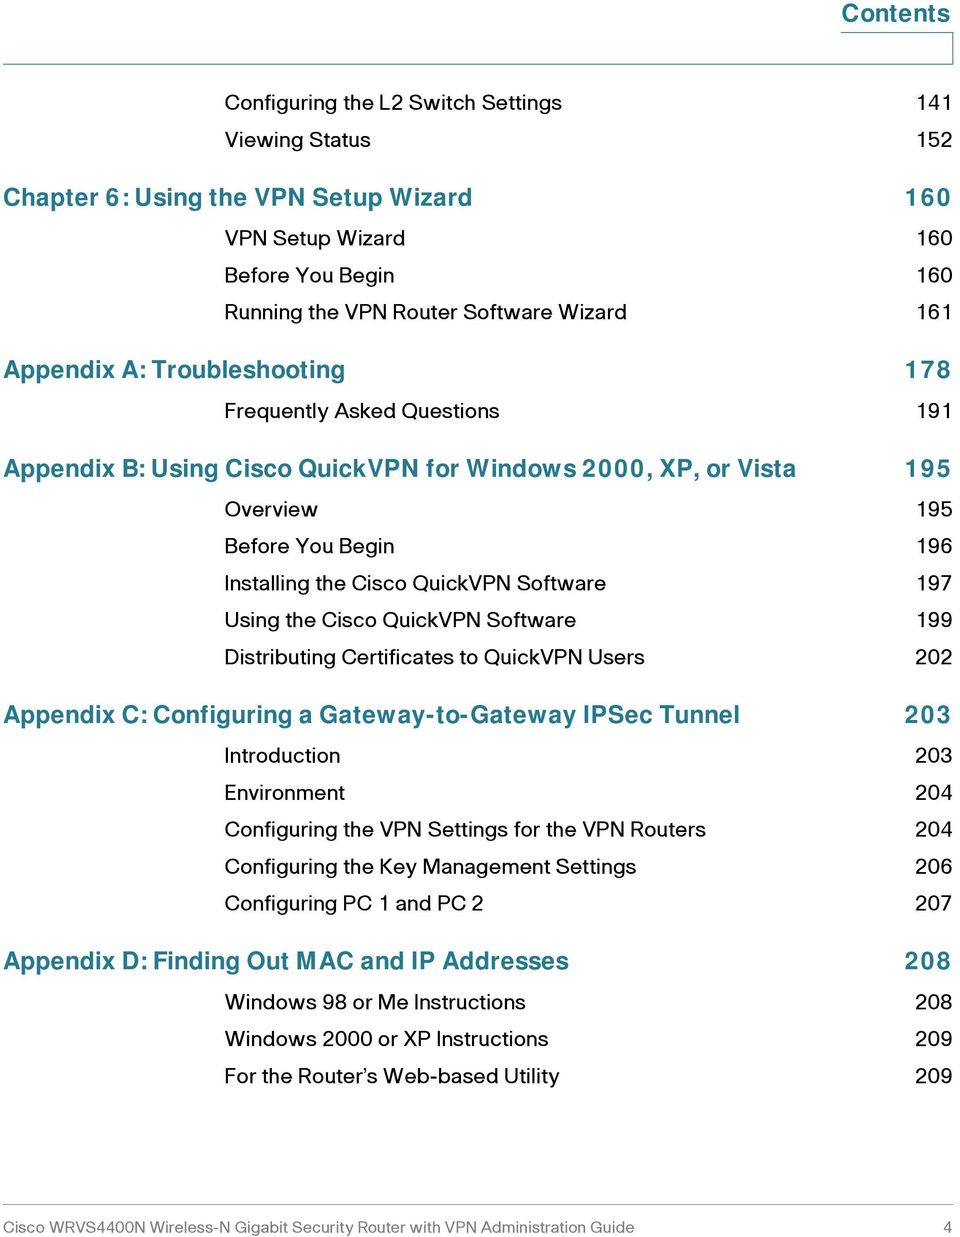 Software 197 Using the Cisco QuickVPN Software 199 Distributing Certificates to QuickVPN Users 202 Appendix C: Configuring a Gateway-to-Gateway IPSec Tunnel 203 Introduction 203 Environment 204